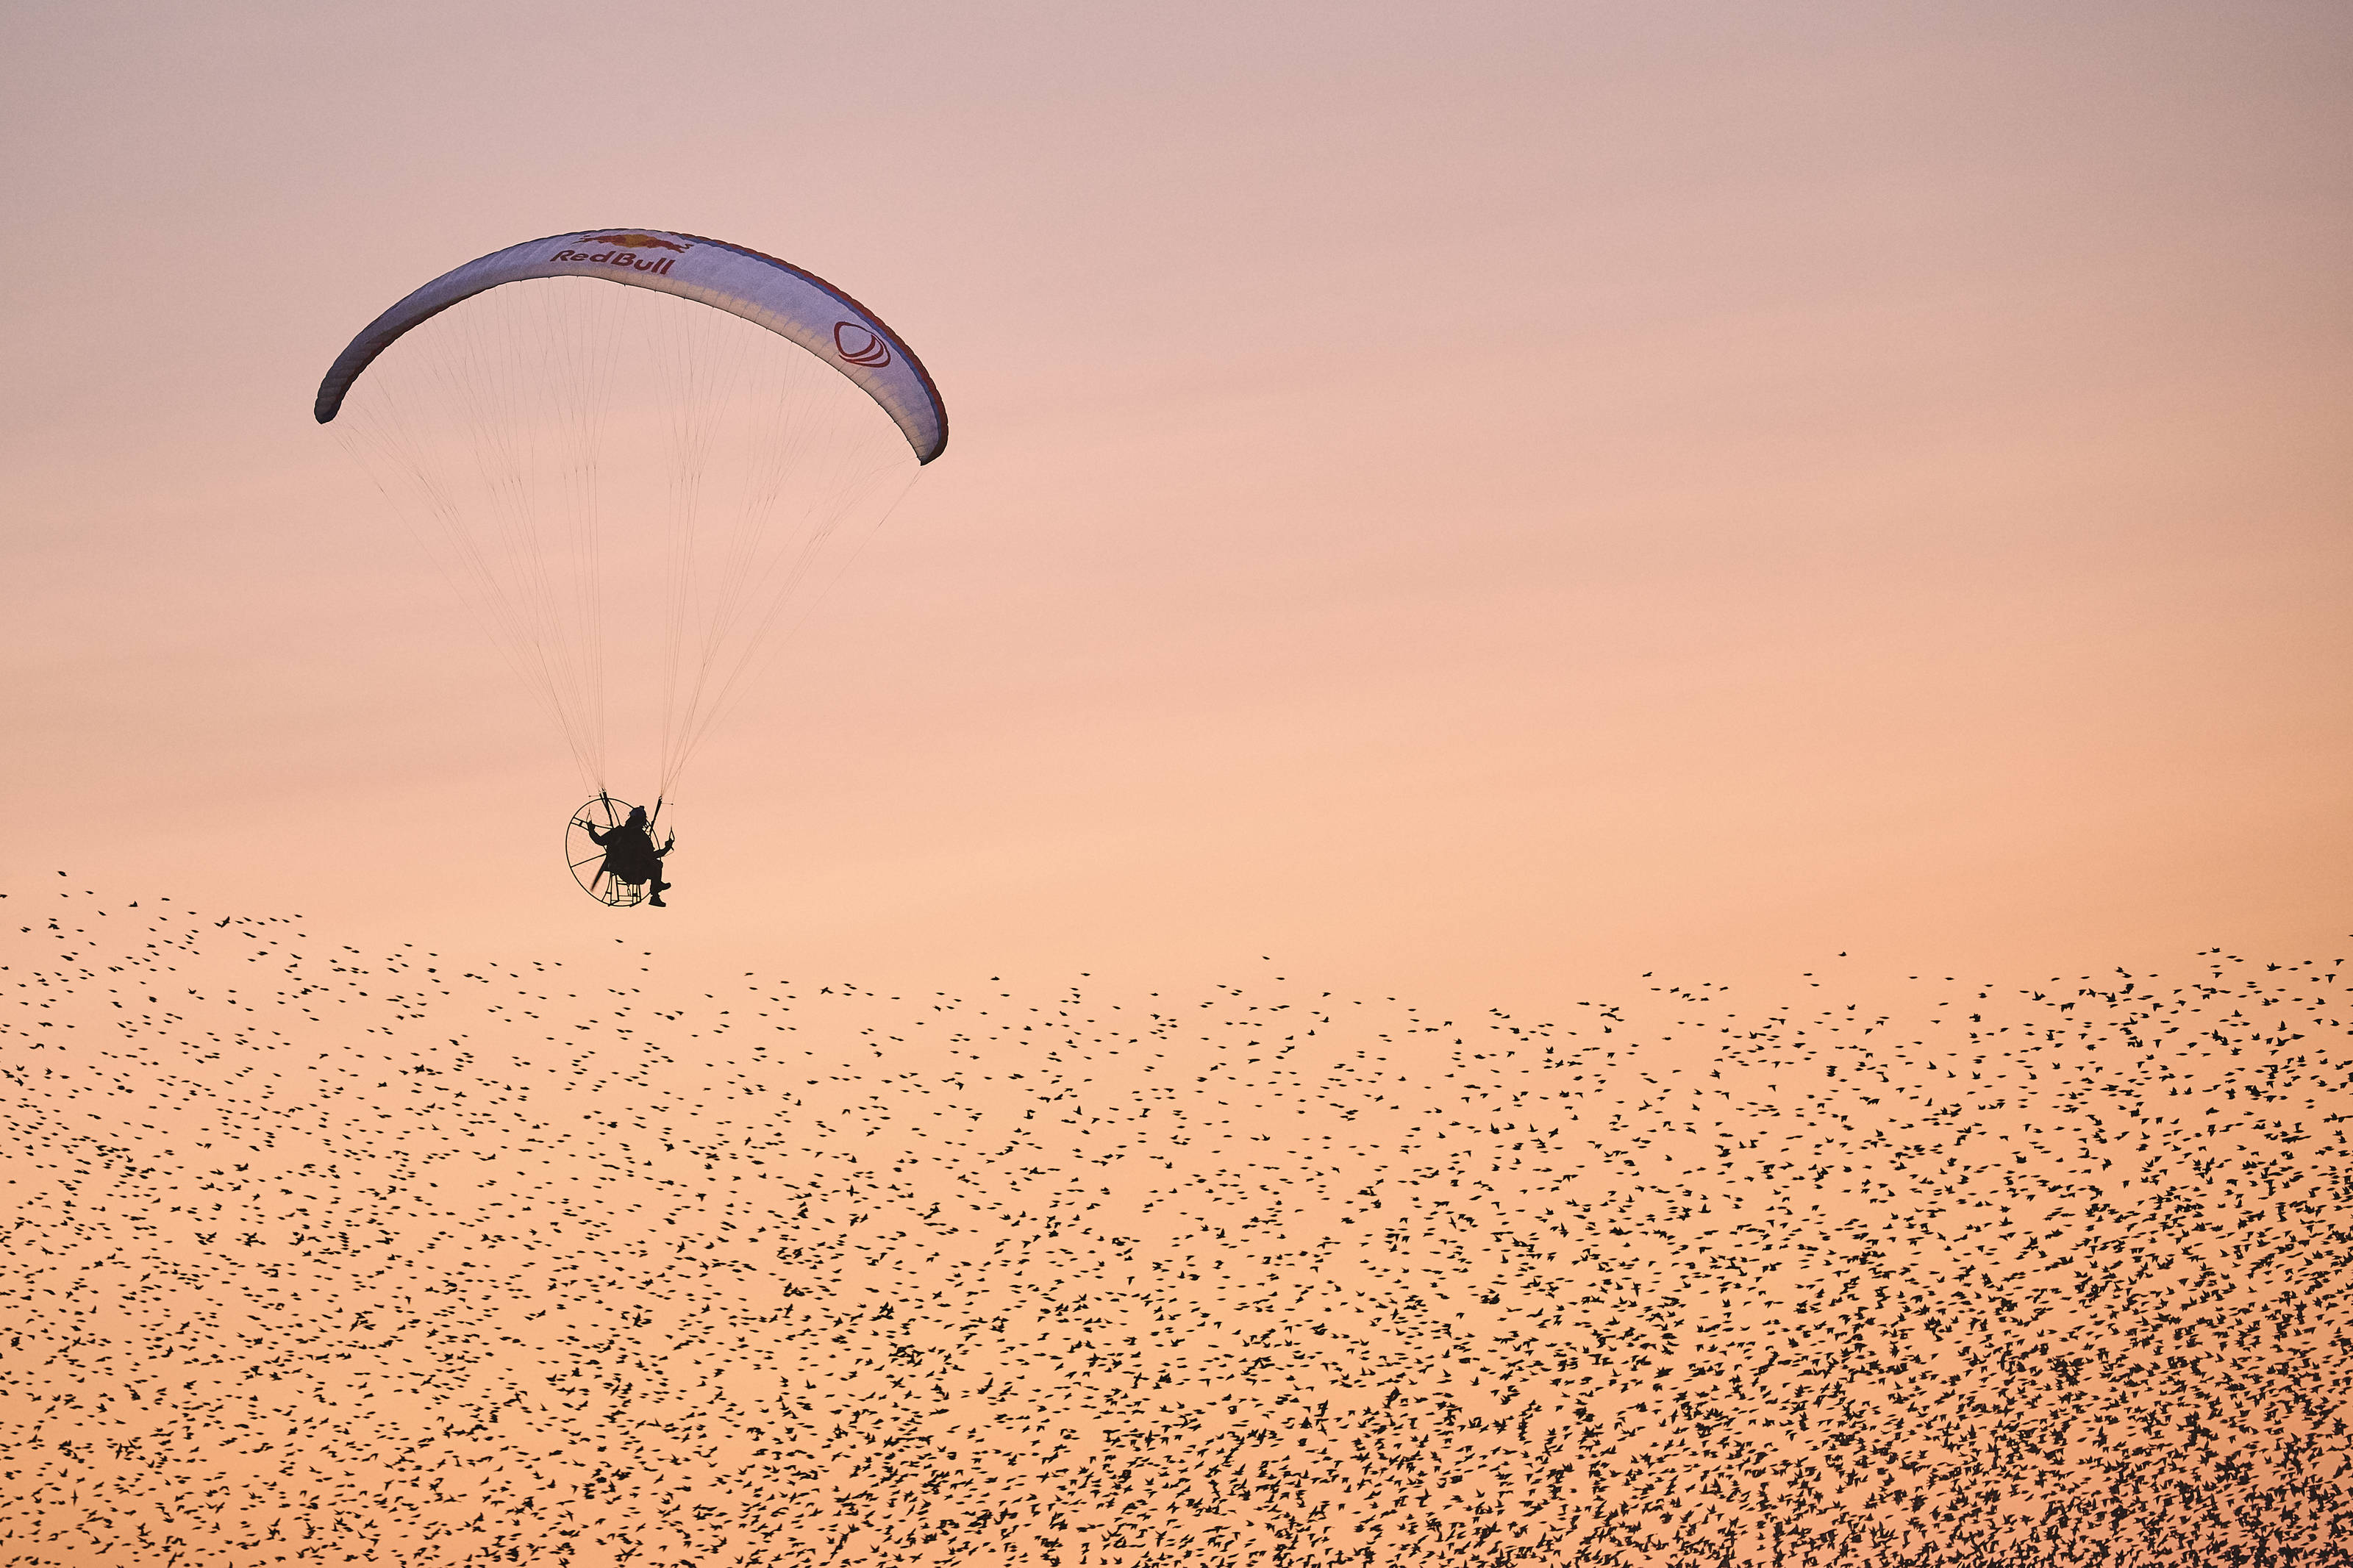 Paraglider Llorens flies with the birds - ASC - Action Sports Connection